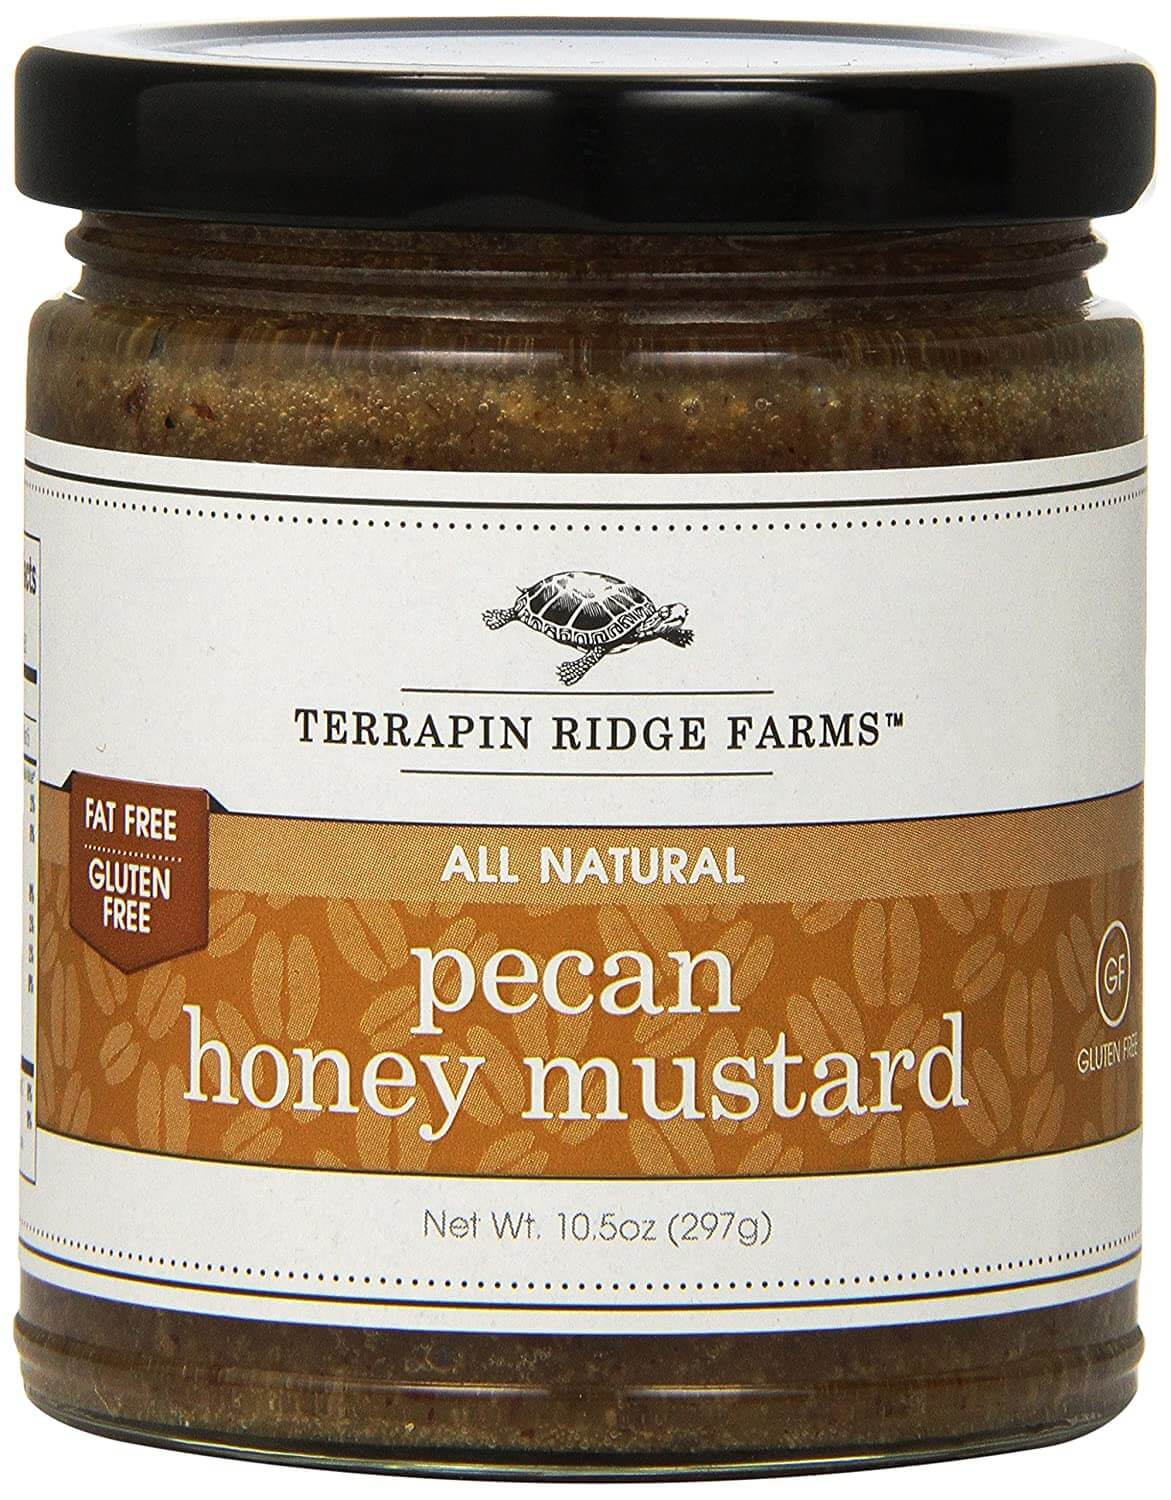 Terrapin Ridge Farms Pecan Honey Mustard